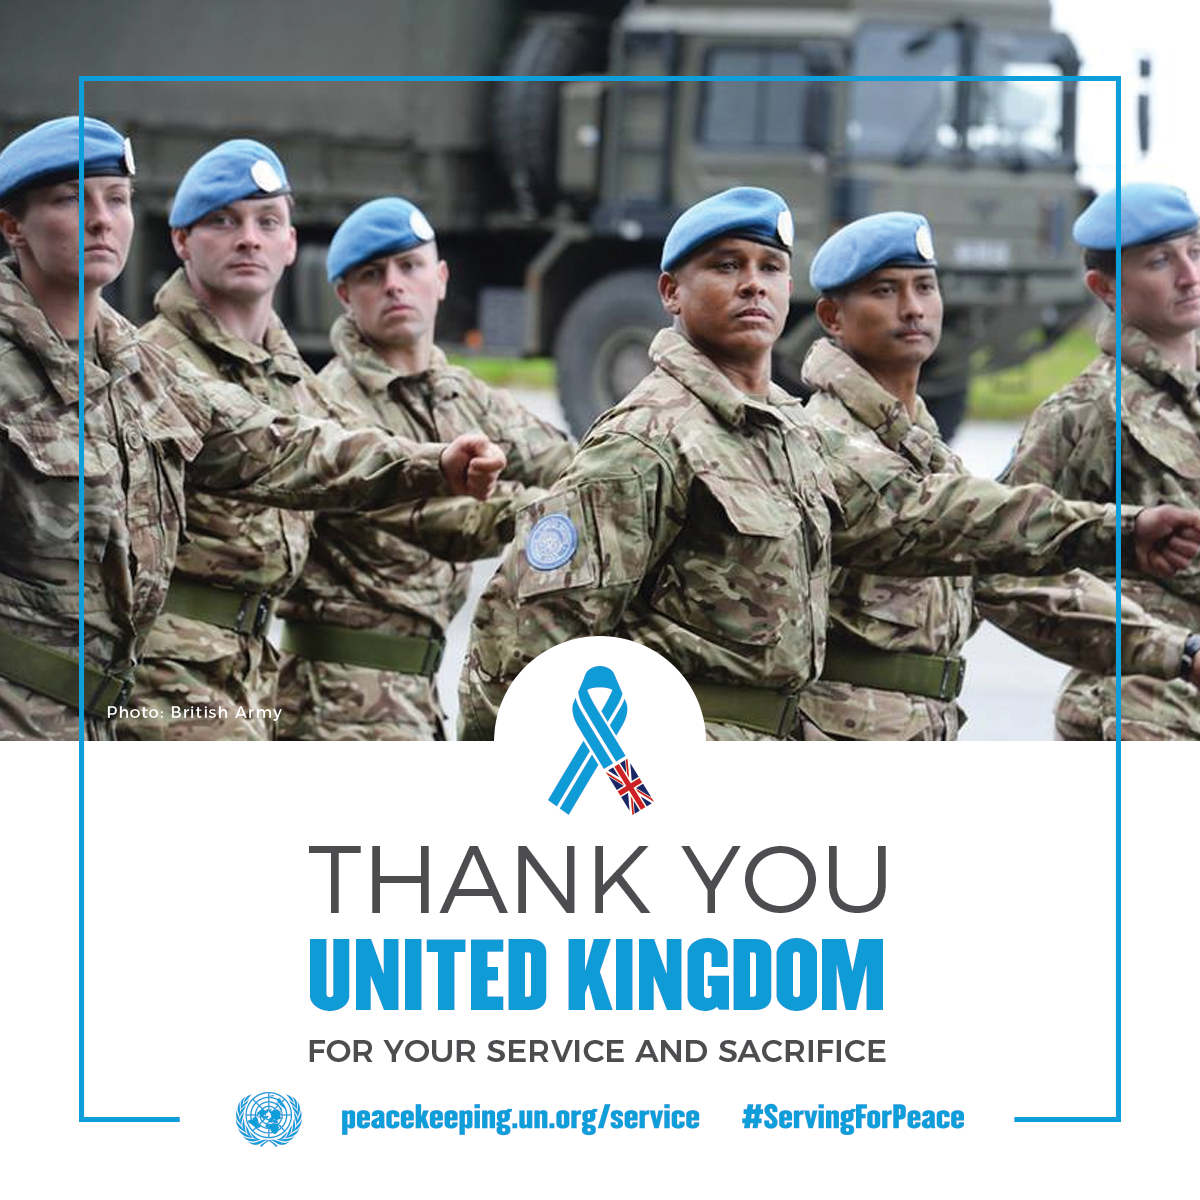 Thank you UK peacekeepers for your service and sacrifice